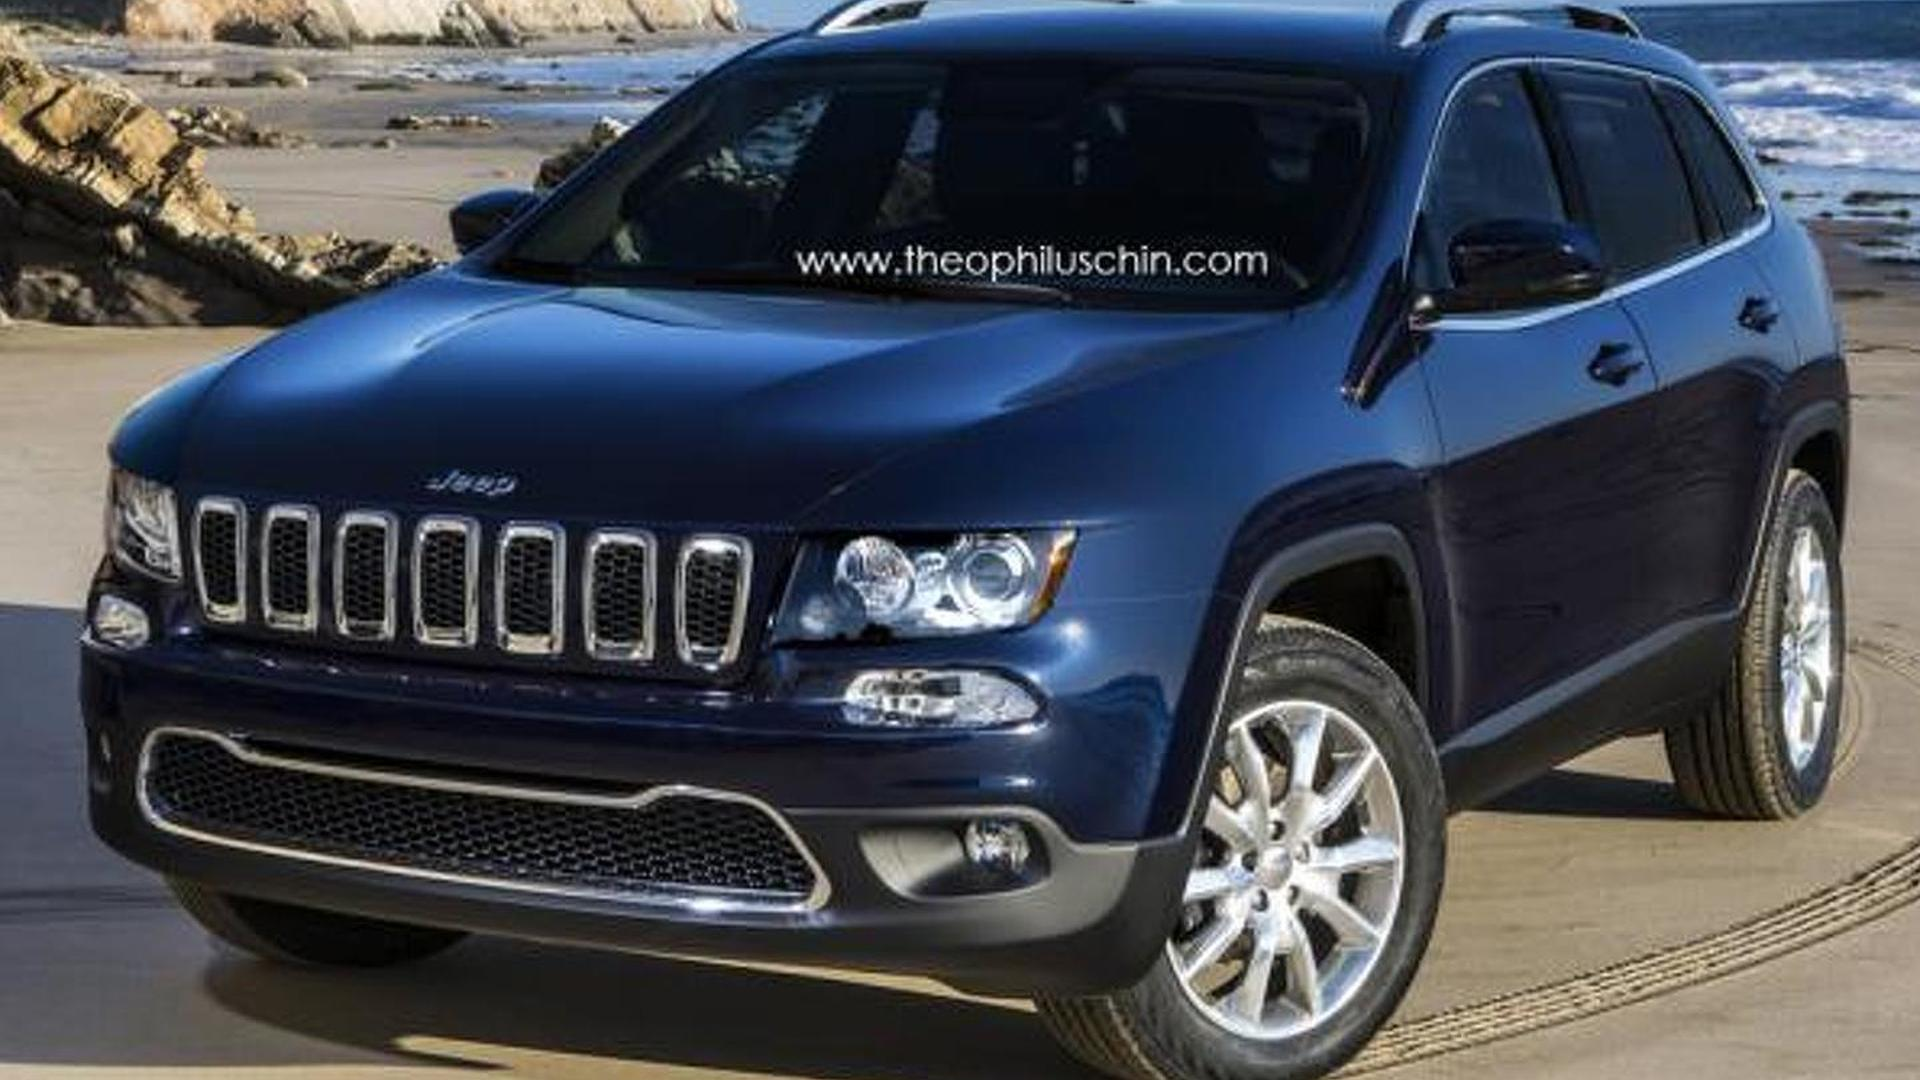 jeep cherokee latitude capsule sunrise review at